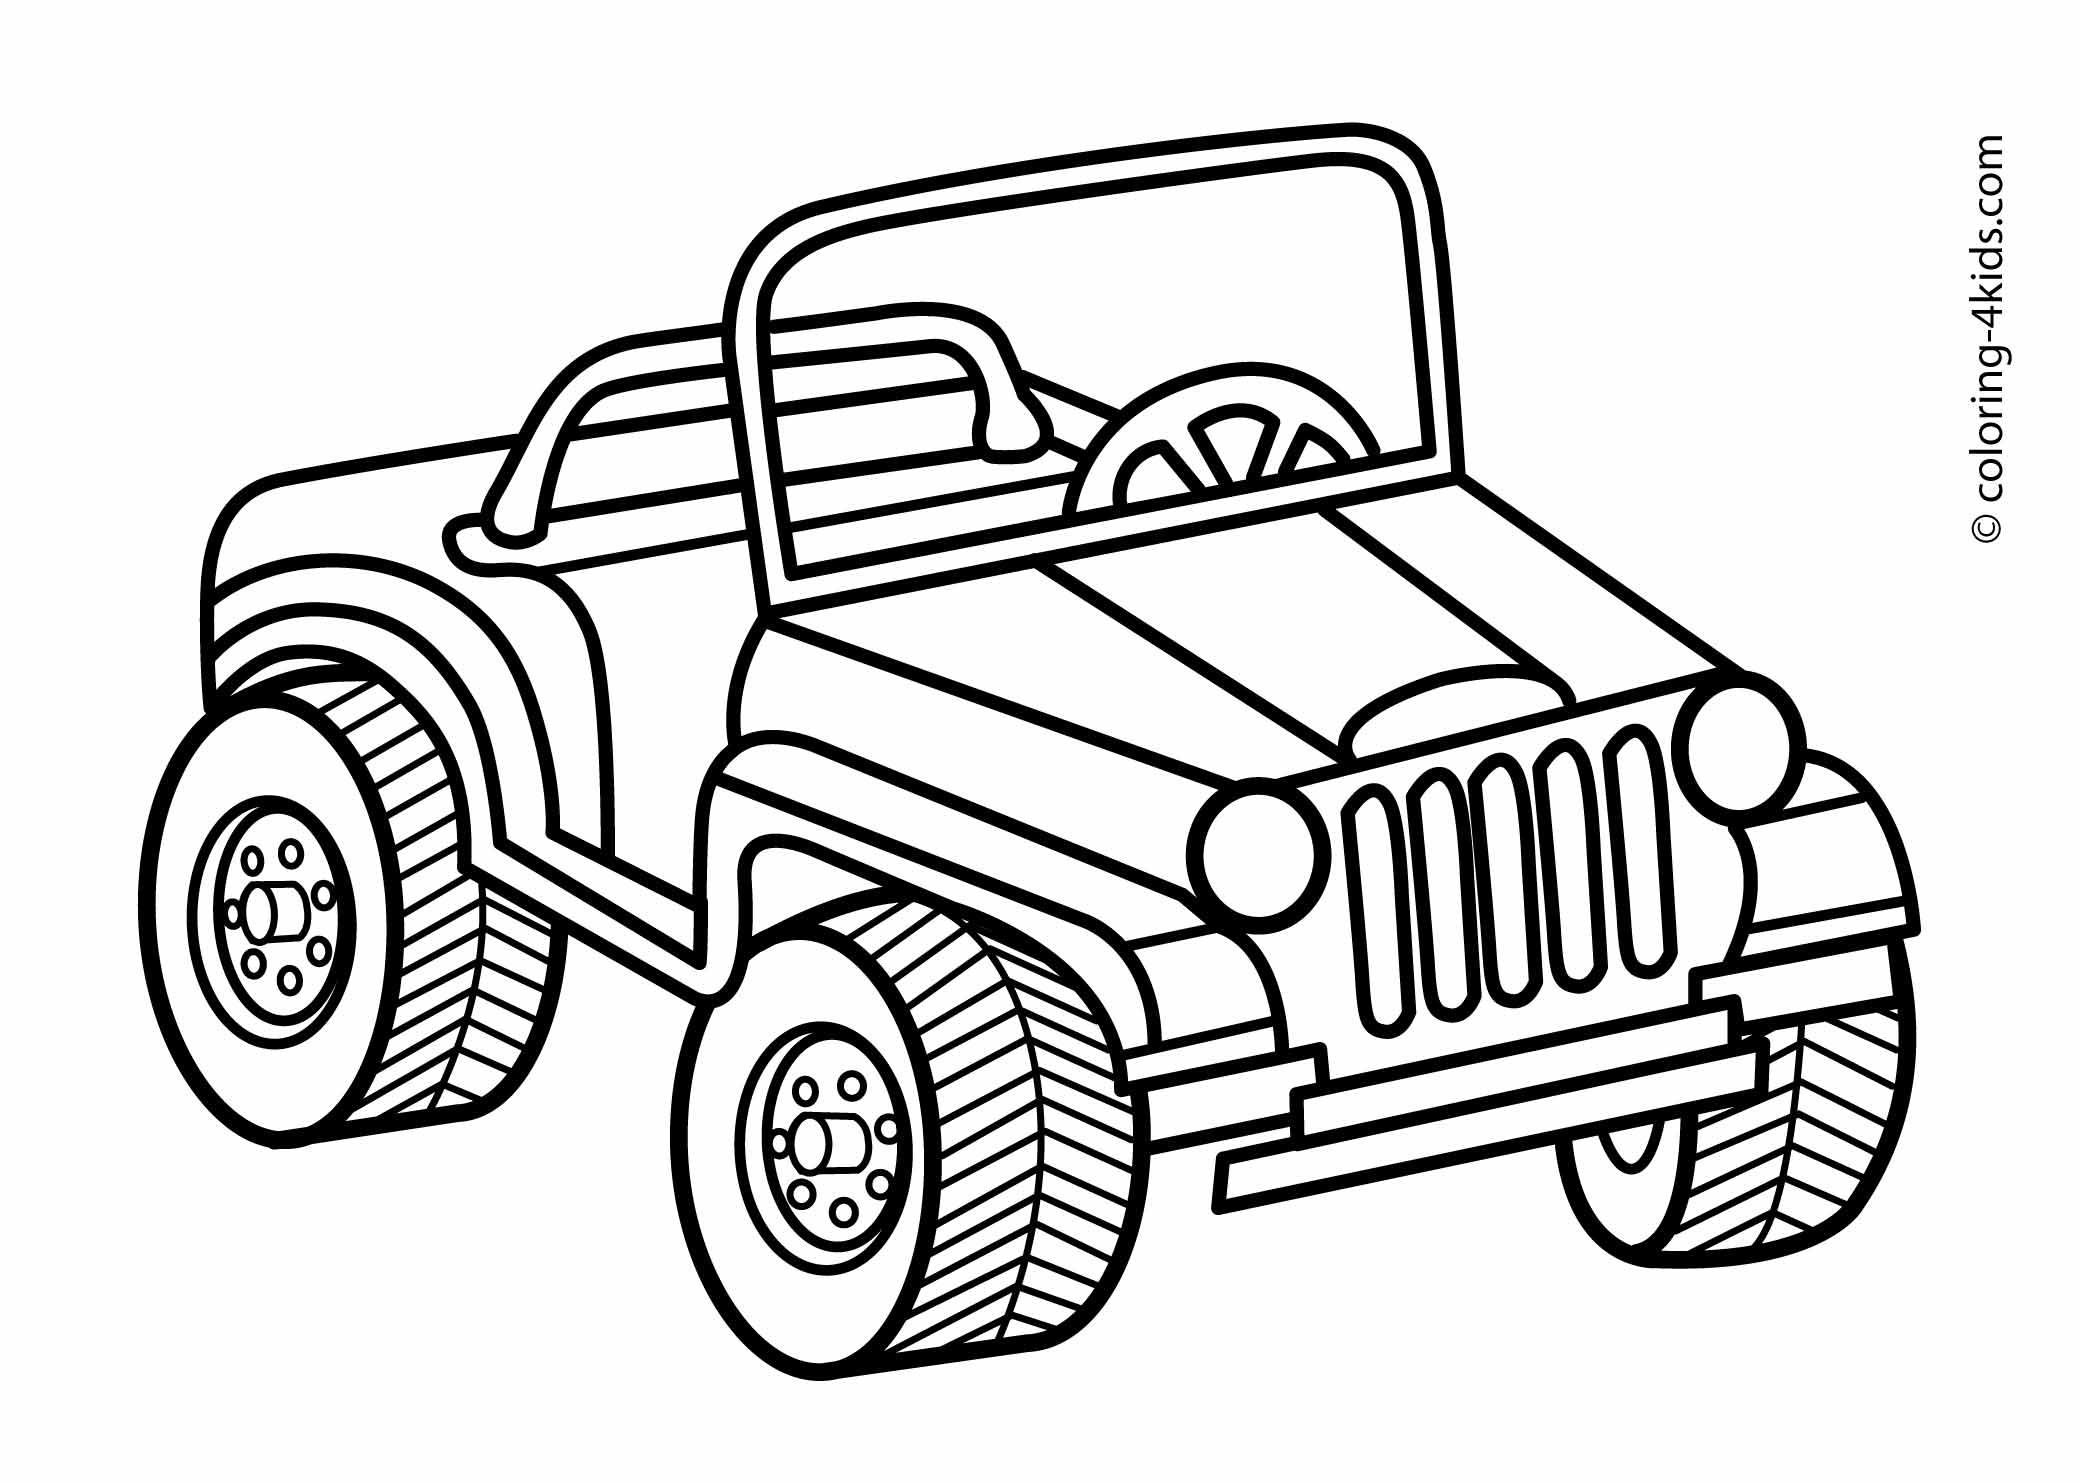 Free printable coloring pages vehicles - Jeep Transportation Coloring Pages For Kids Printable